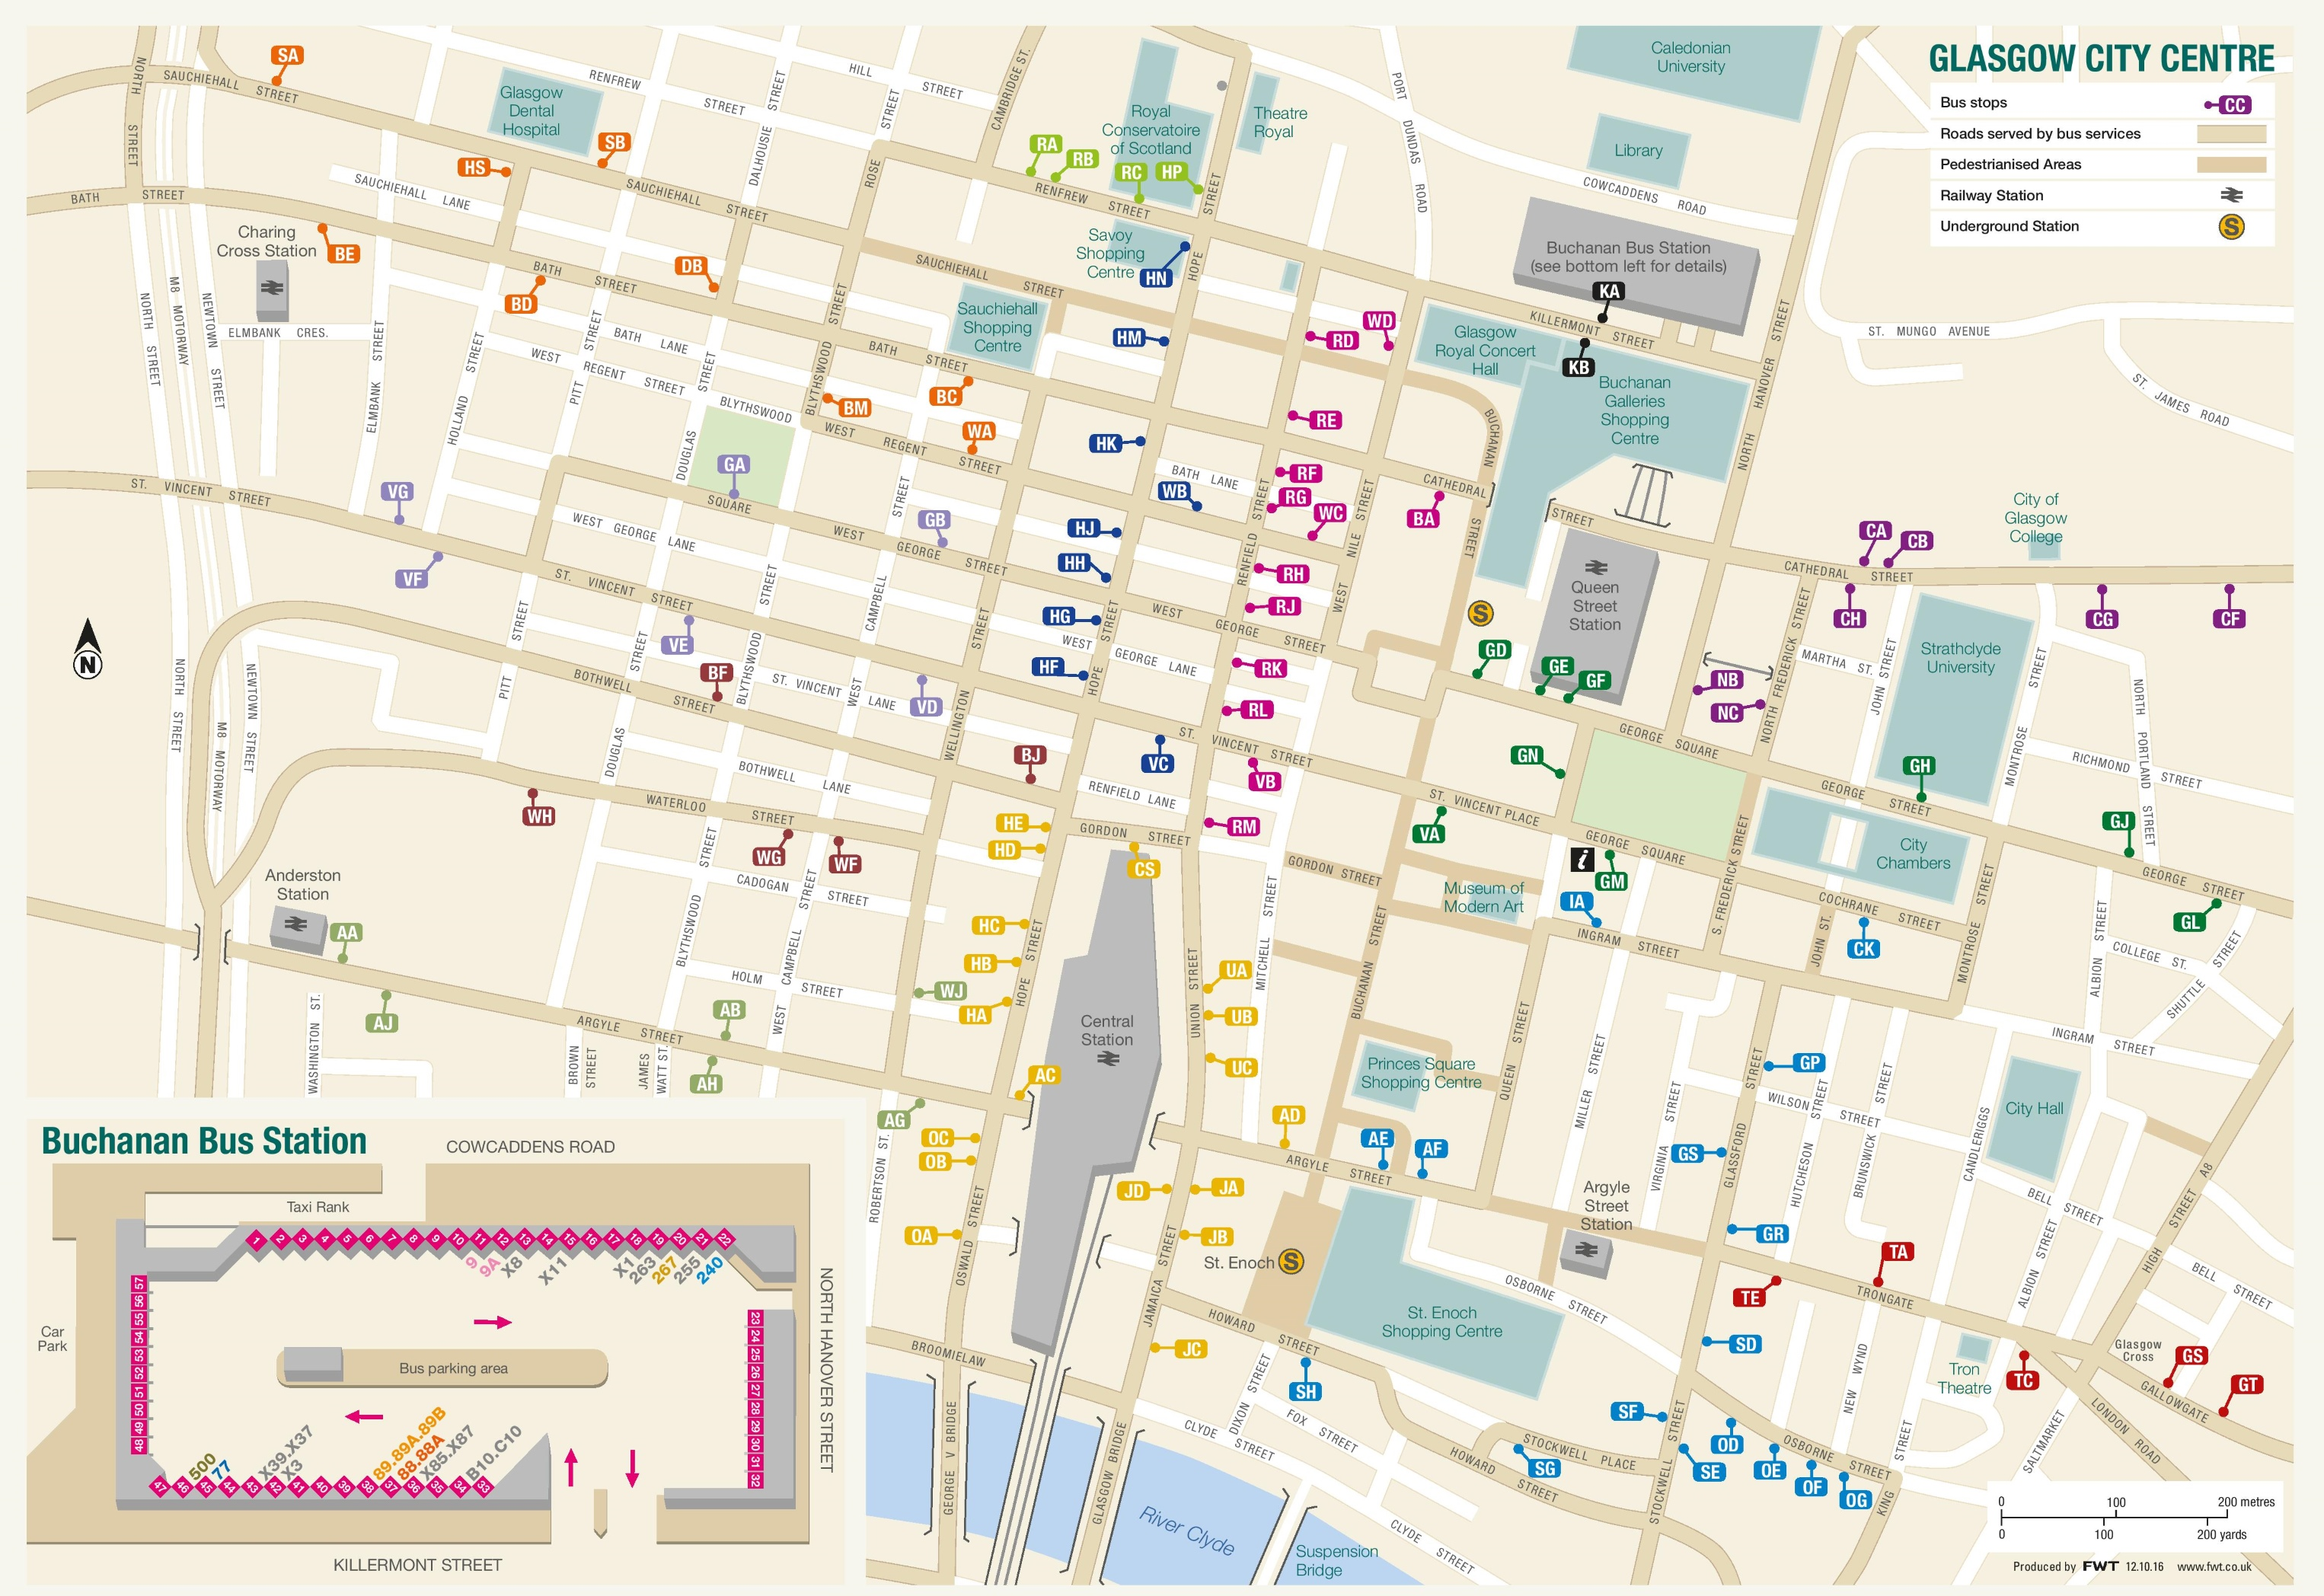 Glasgow city center map